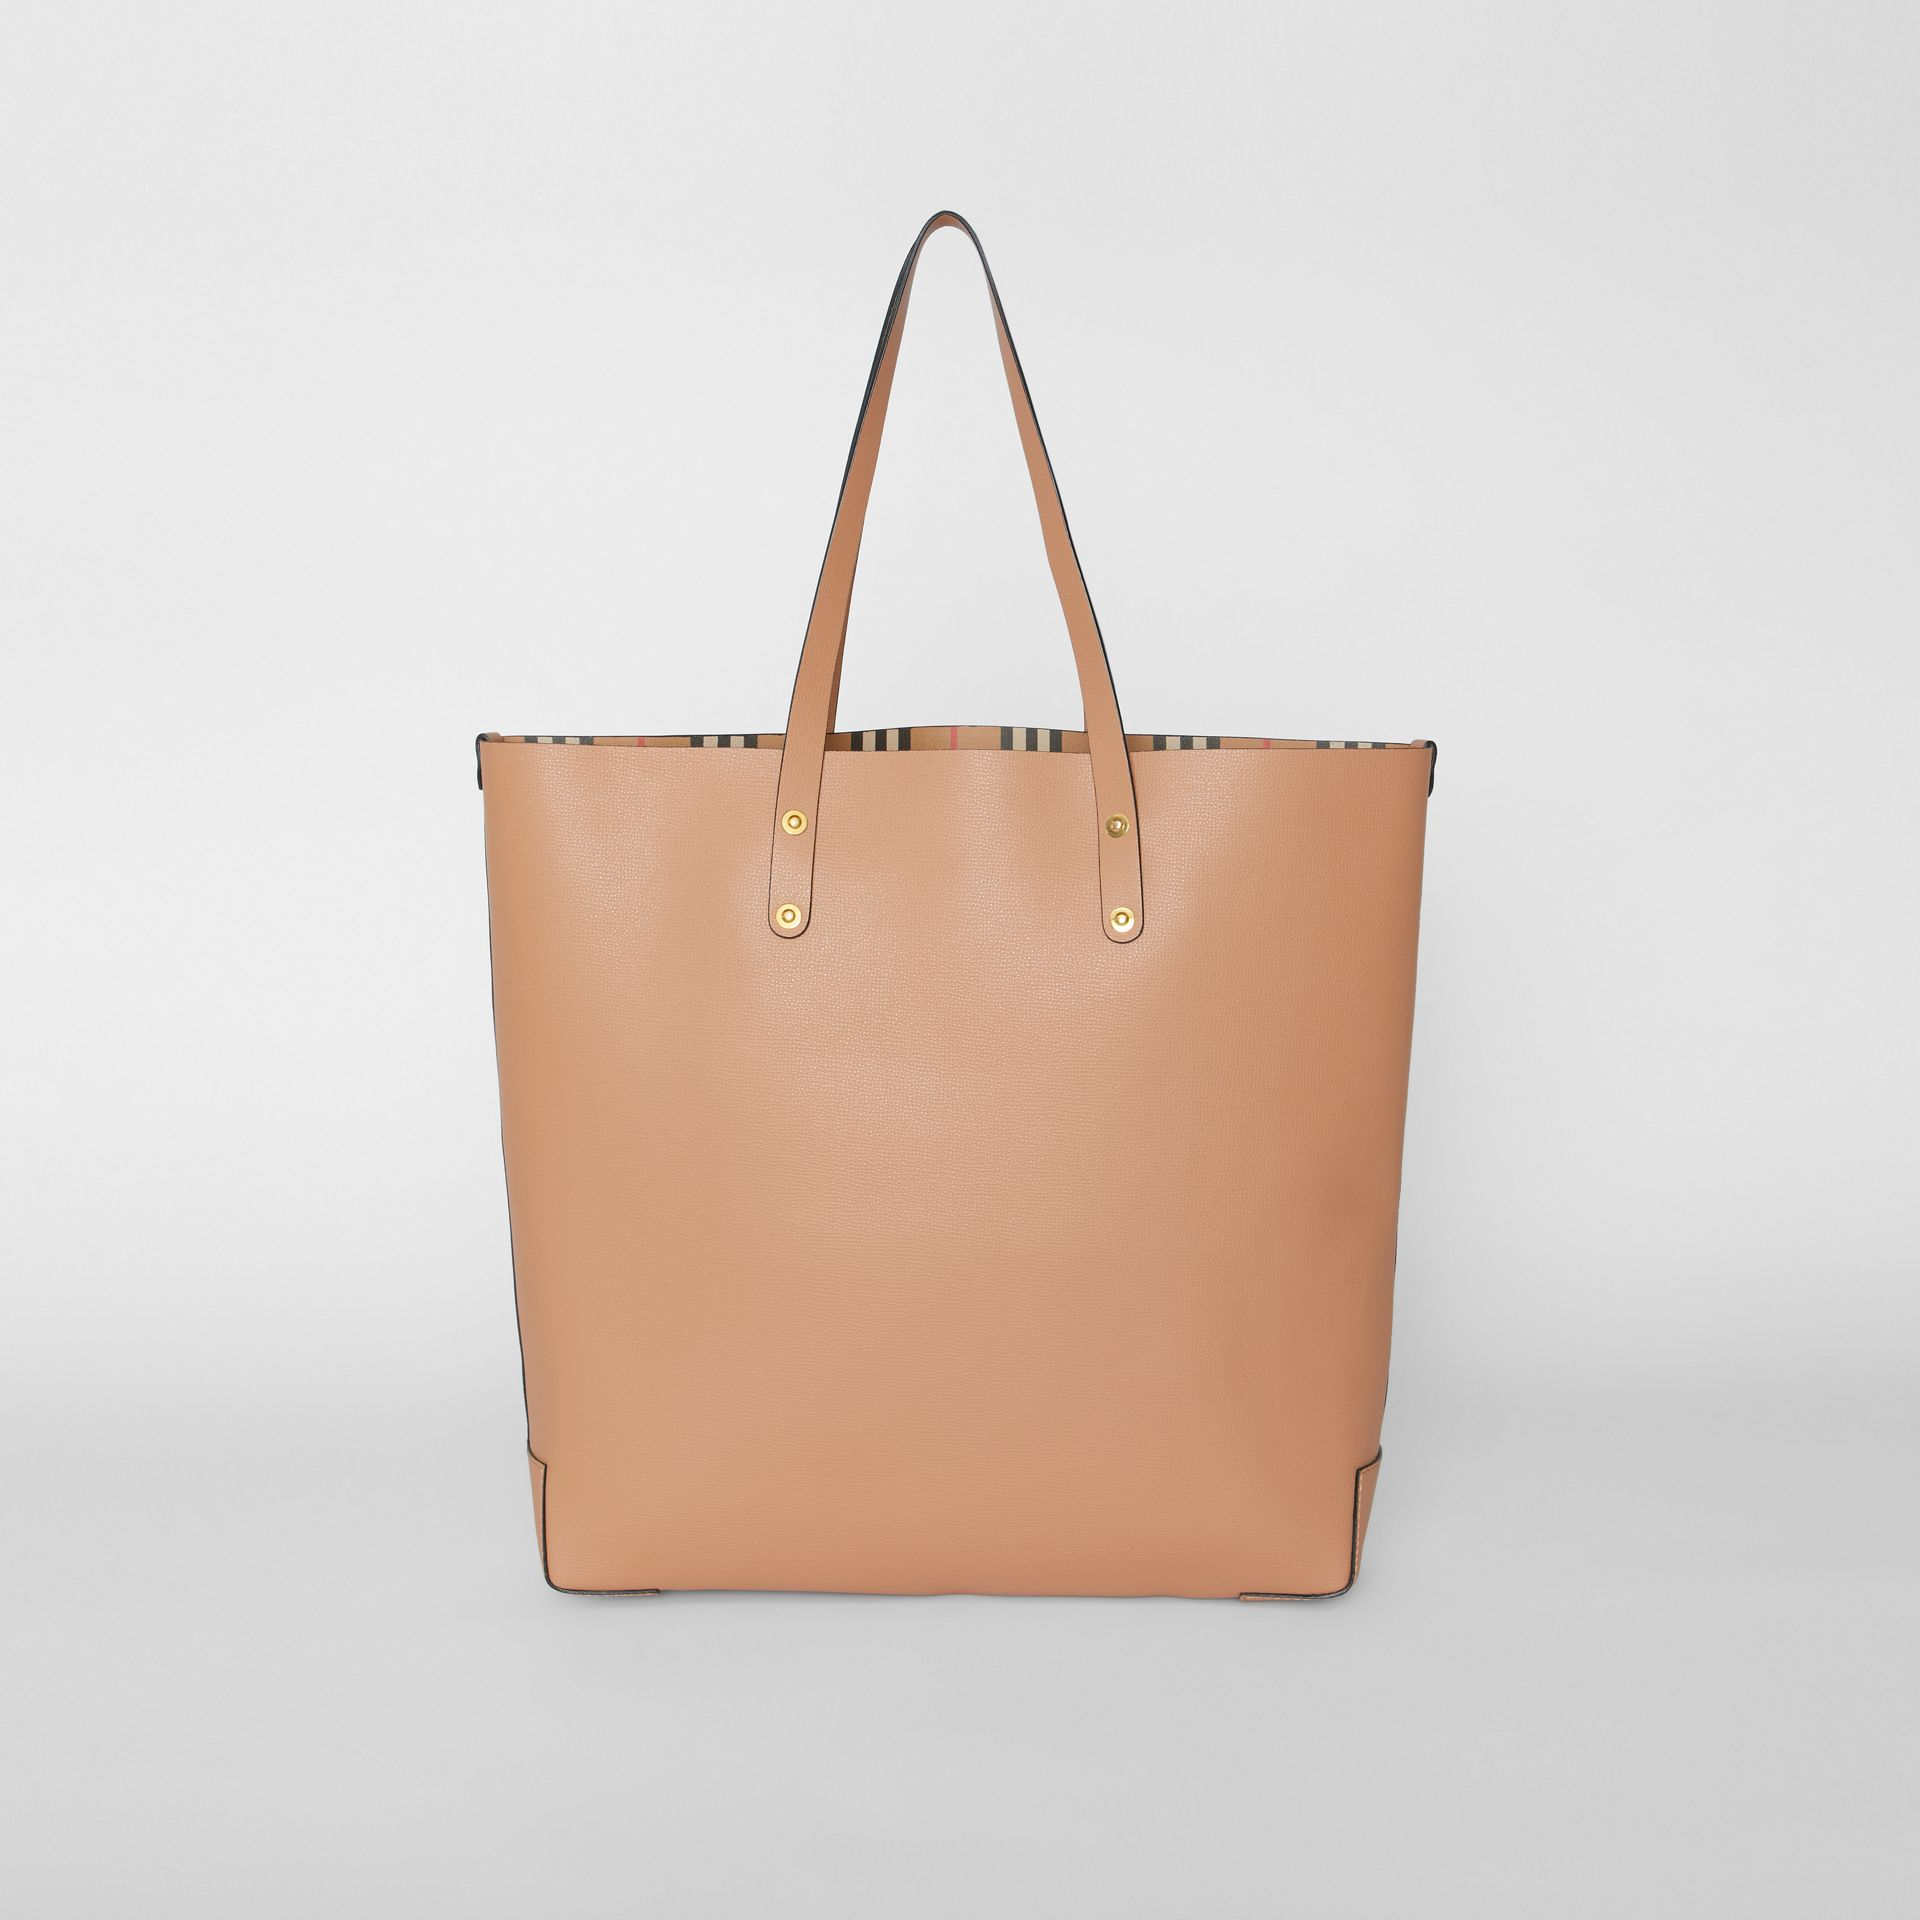 Embossed Crest Leather Tote in Light Camel - Women | Burberry Canada - gallery image 5